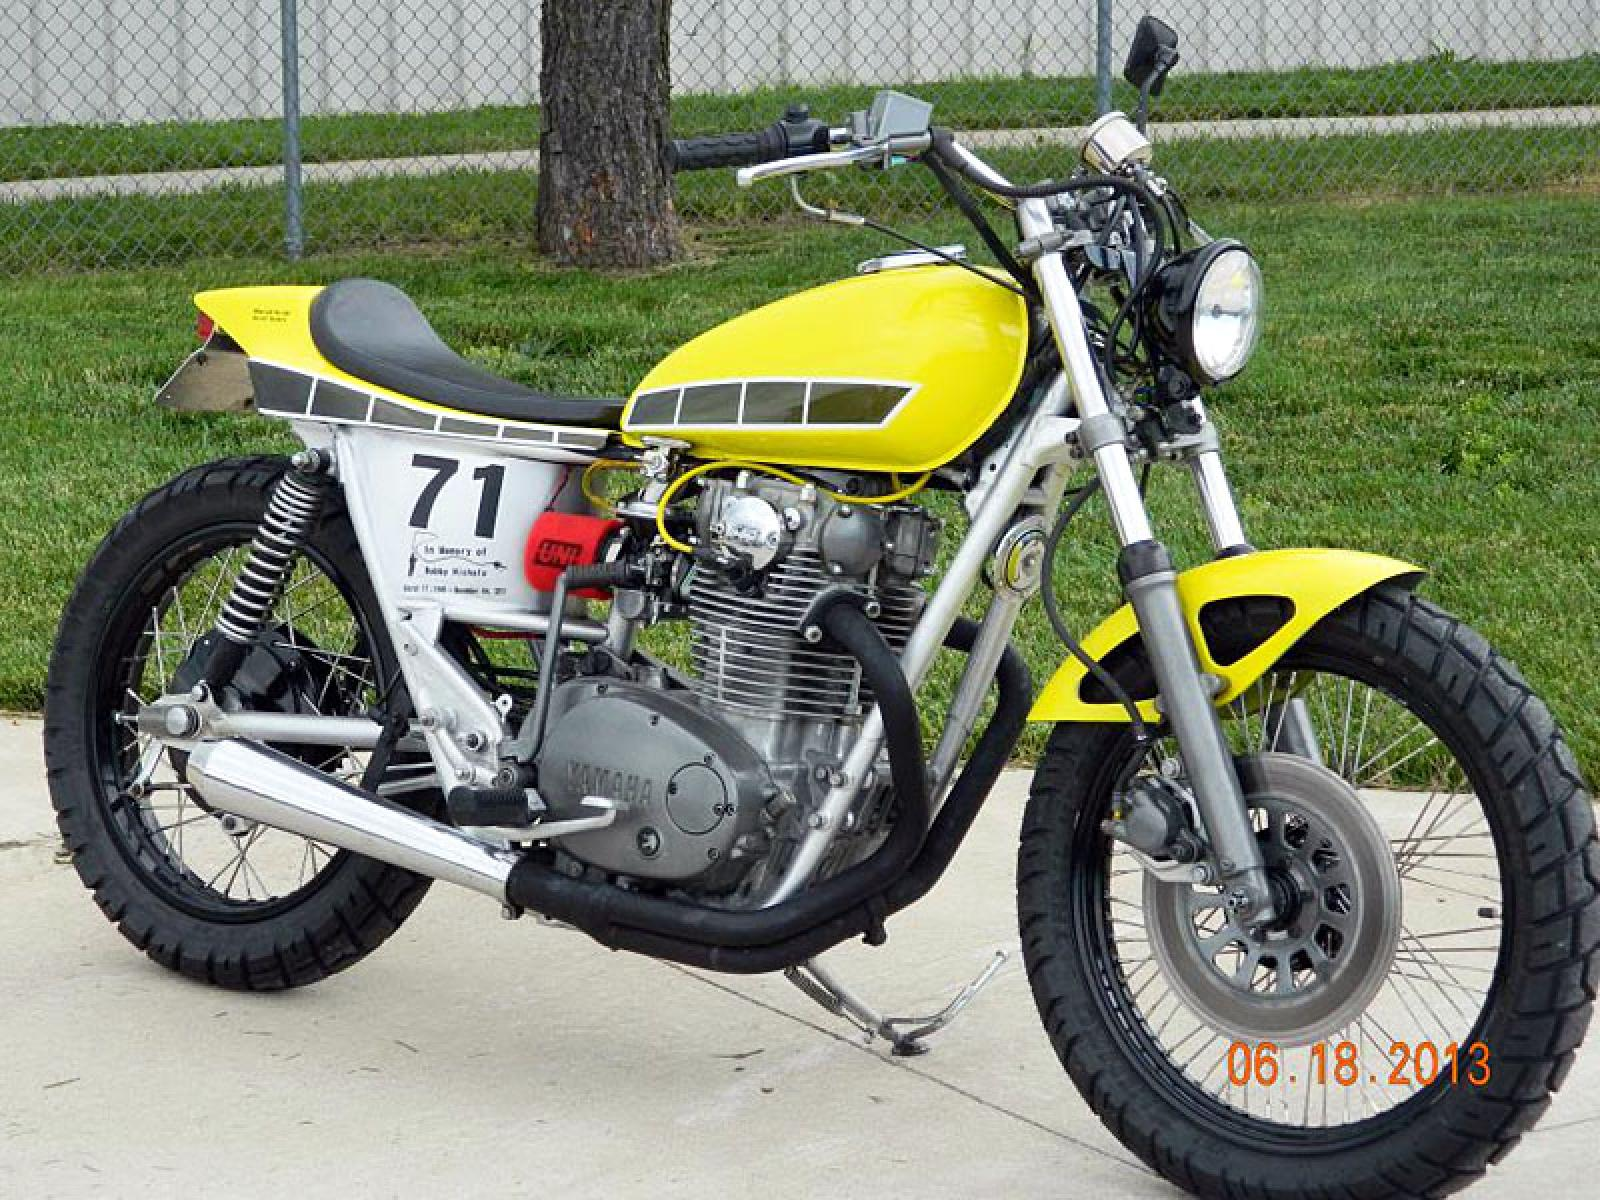 Xs750 Wiring Diagram Color | Index listing of wiring diagrams on yamaha xt 500, yamaha xj 650, yamaha xv 750 virago, yamaha fzr 600, yamaha fz 600, yamaha tzr 125, yamaha xt 125, yamaha fj 1100, yamaha xj 750, yamaha yzf-r6, yamaha ybr 125, yamaha xjr 1300, yamaha fj 1200, yamaha xj 550, yamaha srx 600, yamaha gts 1000, yamaha fzr 1000, yamaha sr 125, yamaha tdm 900, yamaha xt 350,